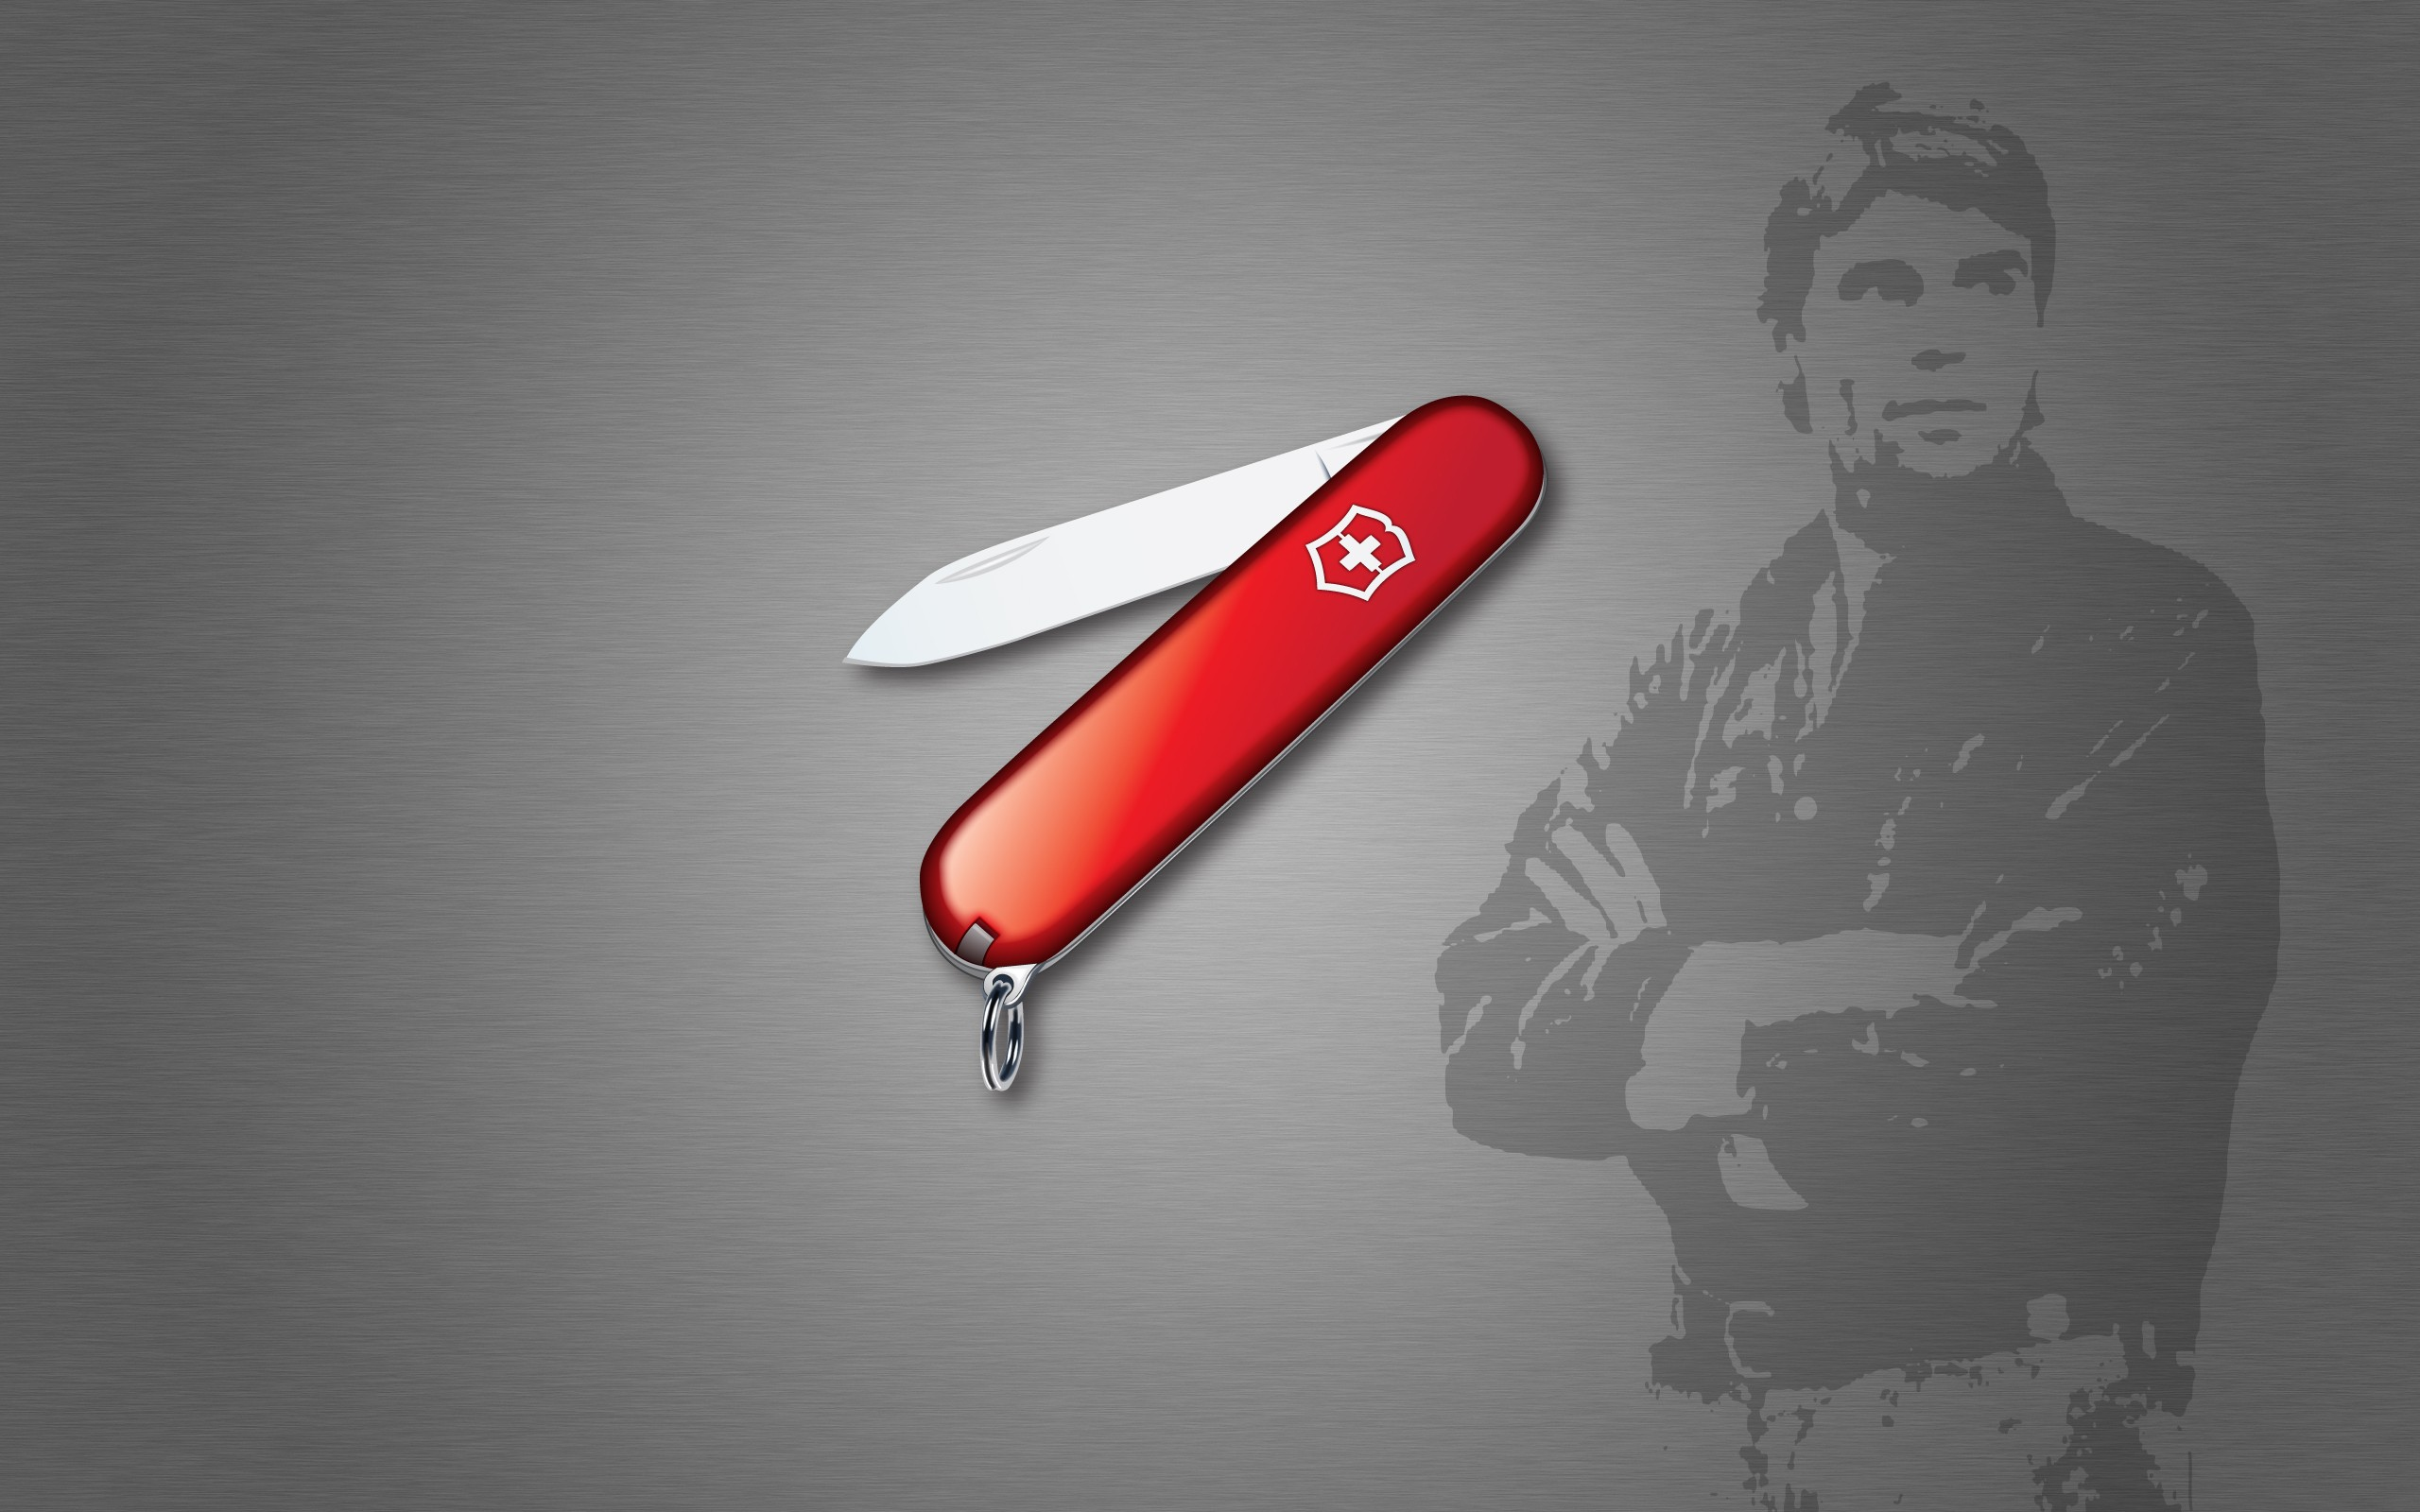 Iphone Wallpaper Resolution Minimalistic Silhouette Stencil Knives Gradient Swiss Army